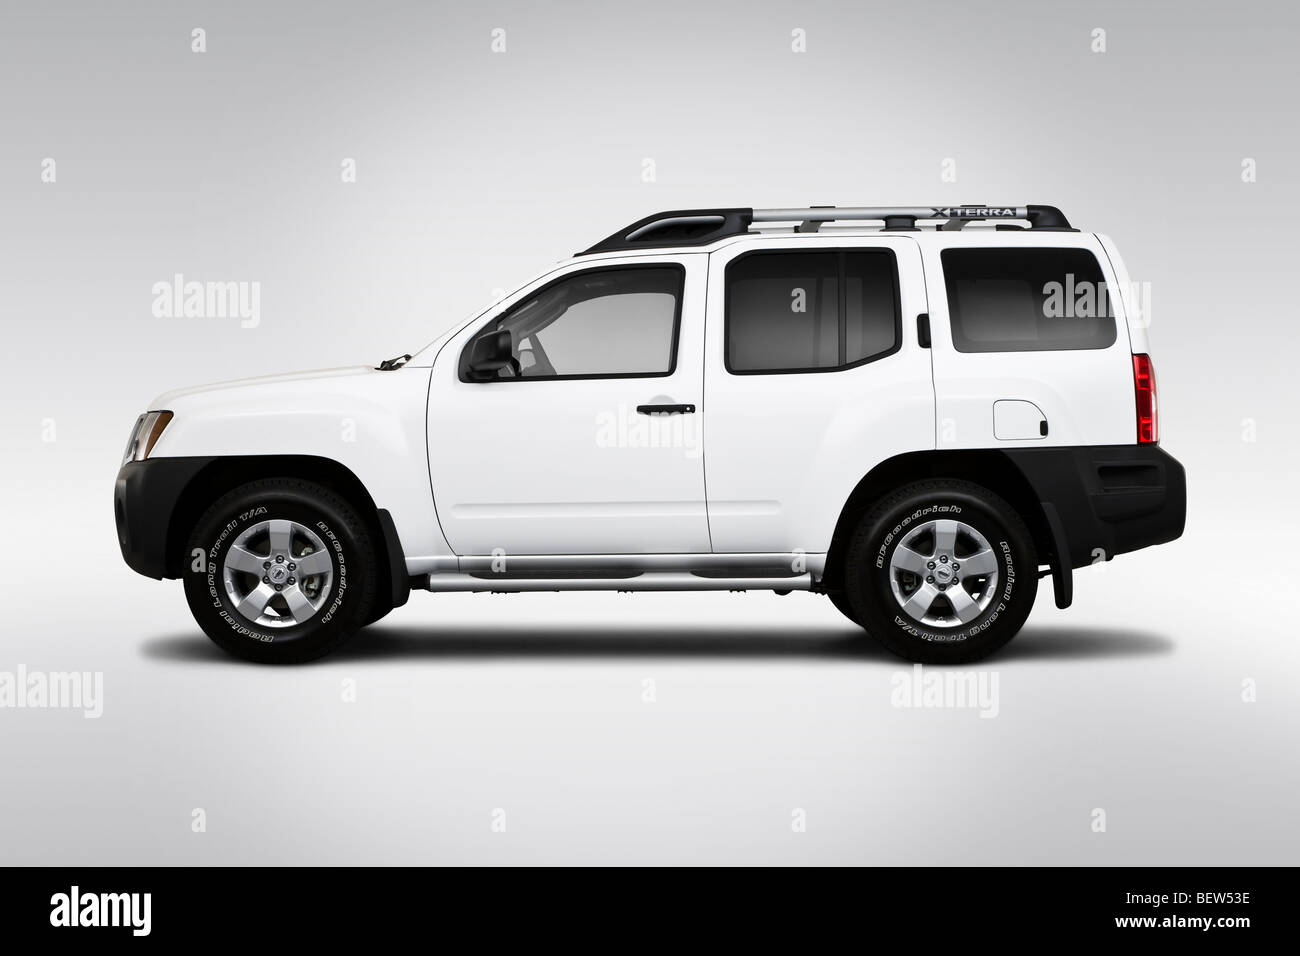 Towing Capacity Stock Photos & Towing Capacity Stock Images